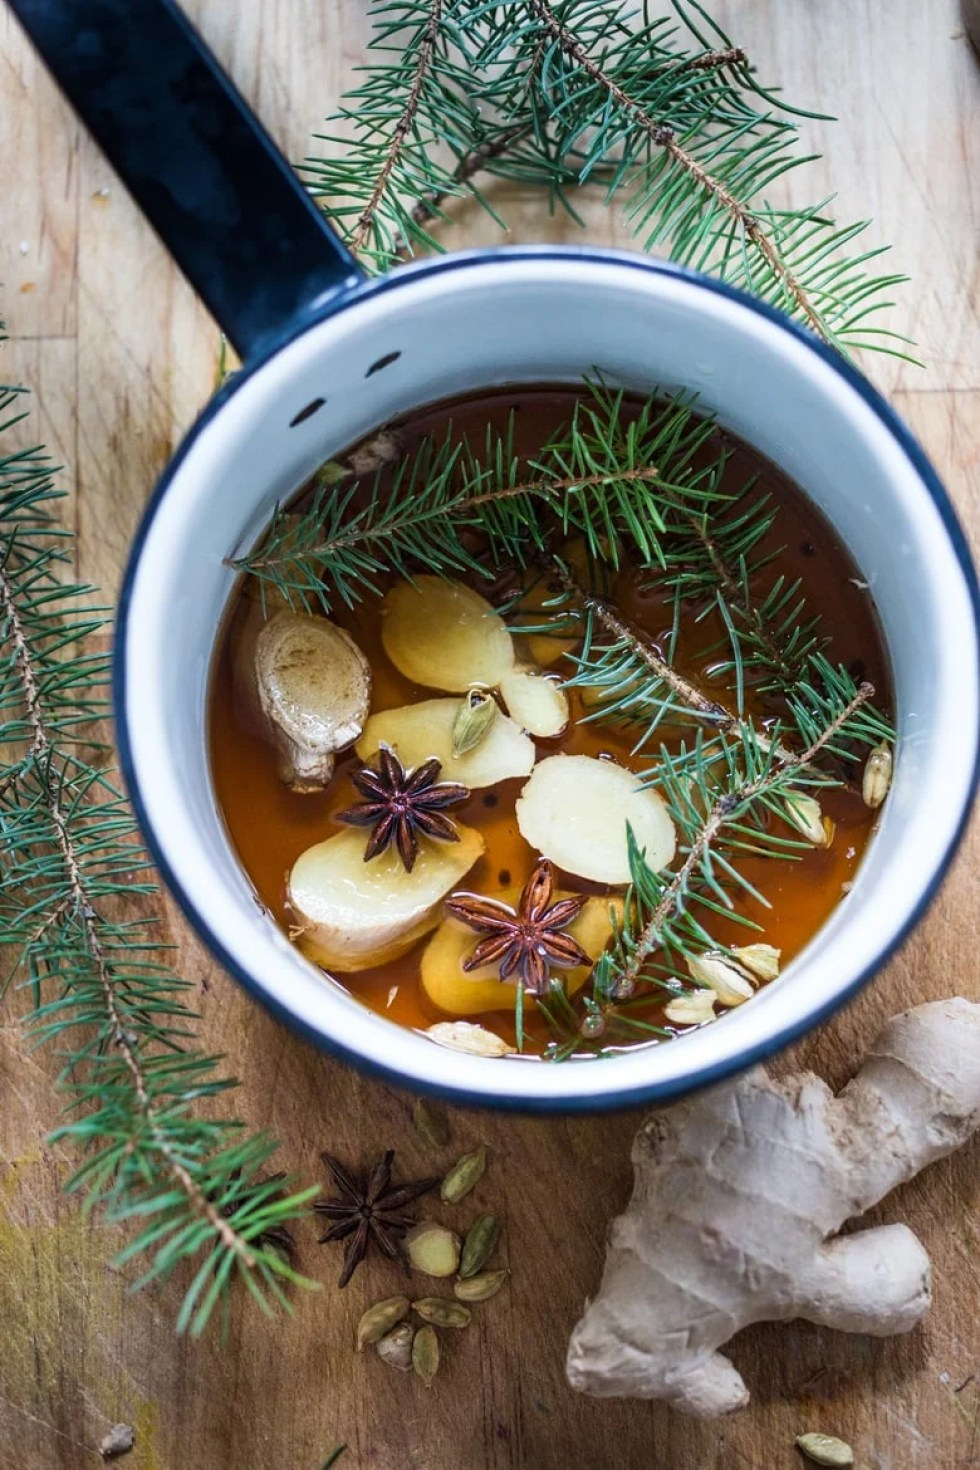 A Long Winter's Nap- A Bourbon cocktail with Maple syrup, ginger, star anise and lemon. A delicious cozy wintery drink! | www.feastingathome.com